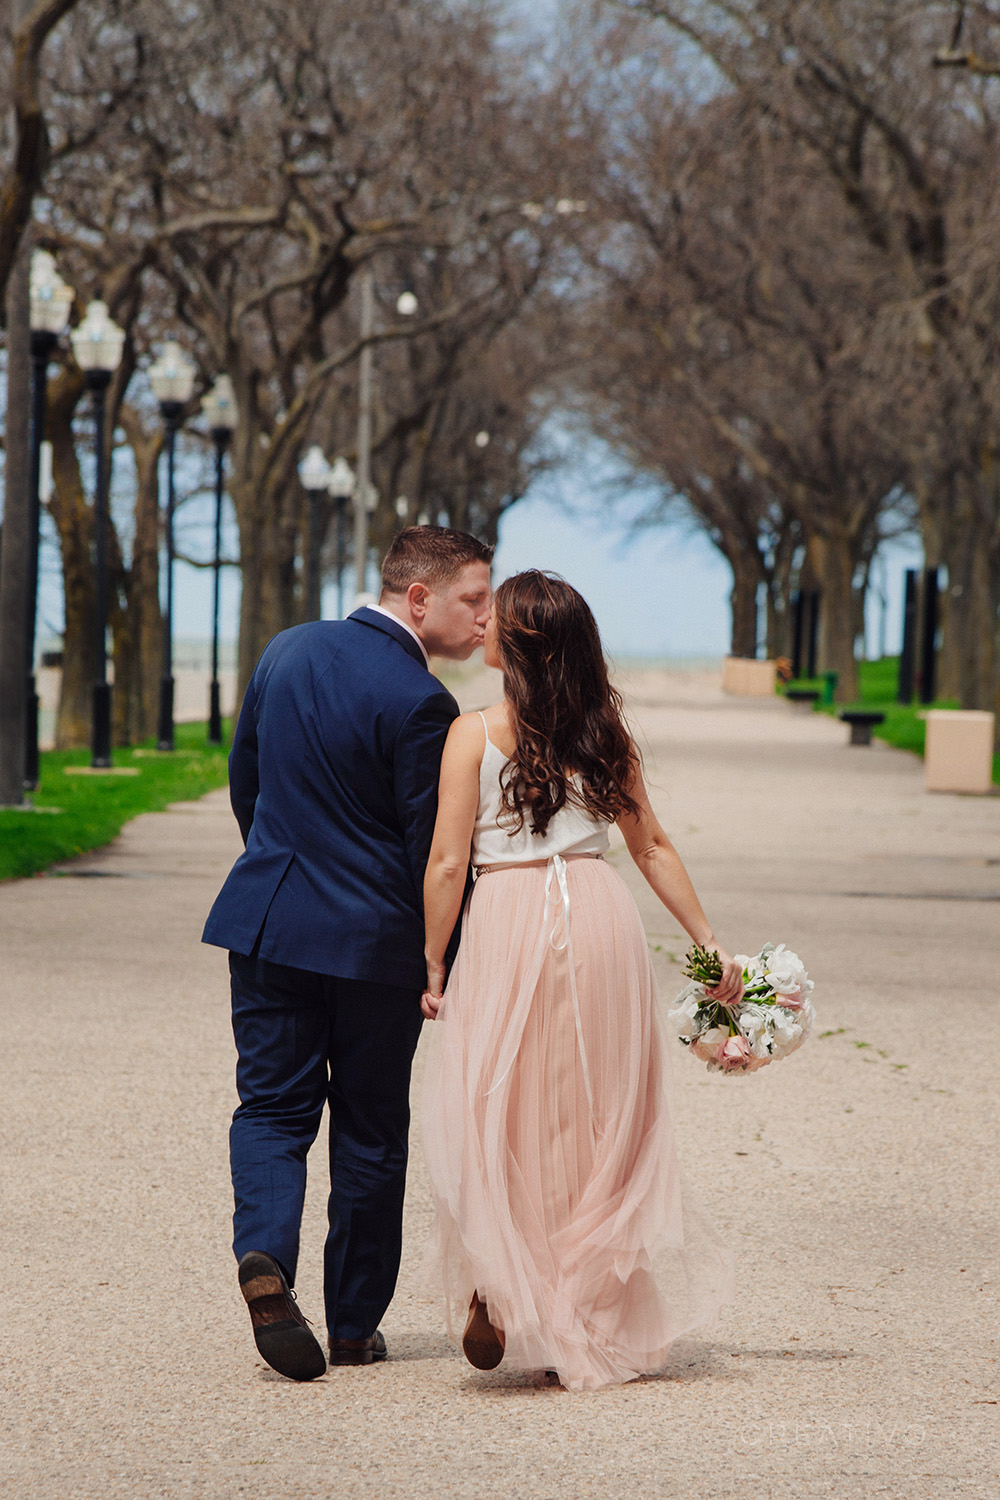 05-HollyBill-spring-elopement-Chicago.jpg